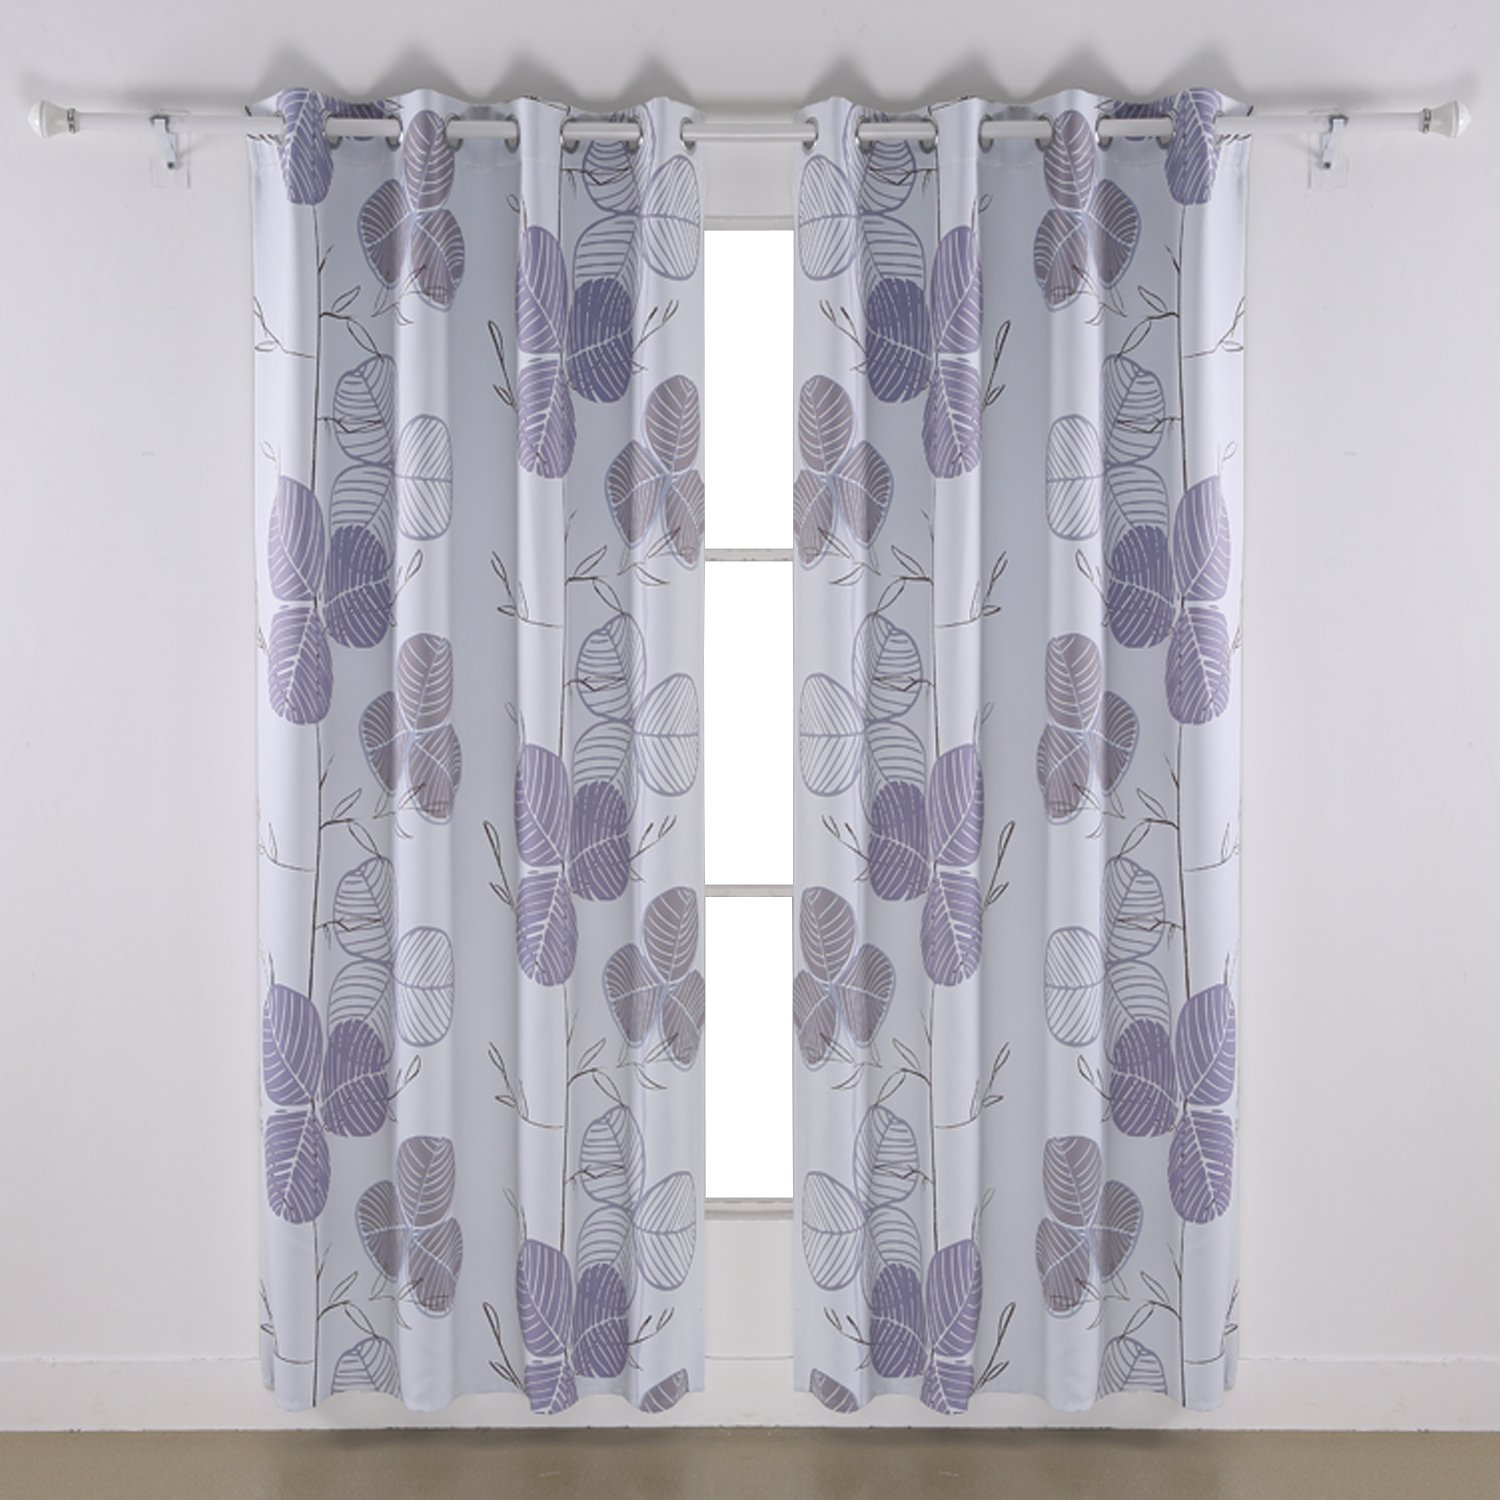 Deconovo Room Darkening Leaf Printed Curtains Window Panel Drapes Thermal Insulated Blackout Grommet Curtains Grey